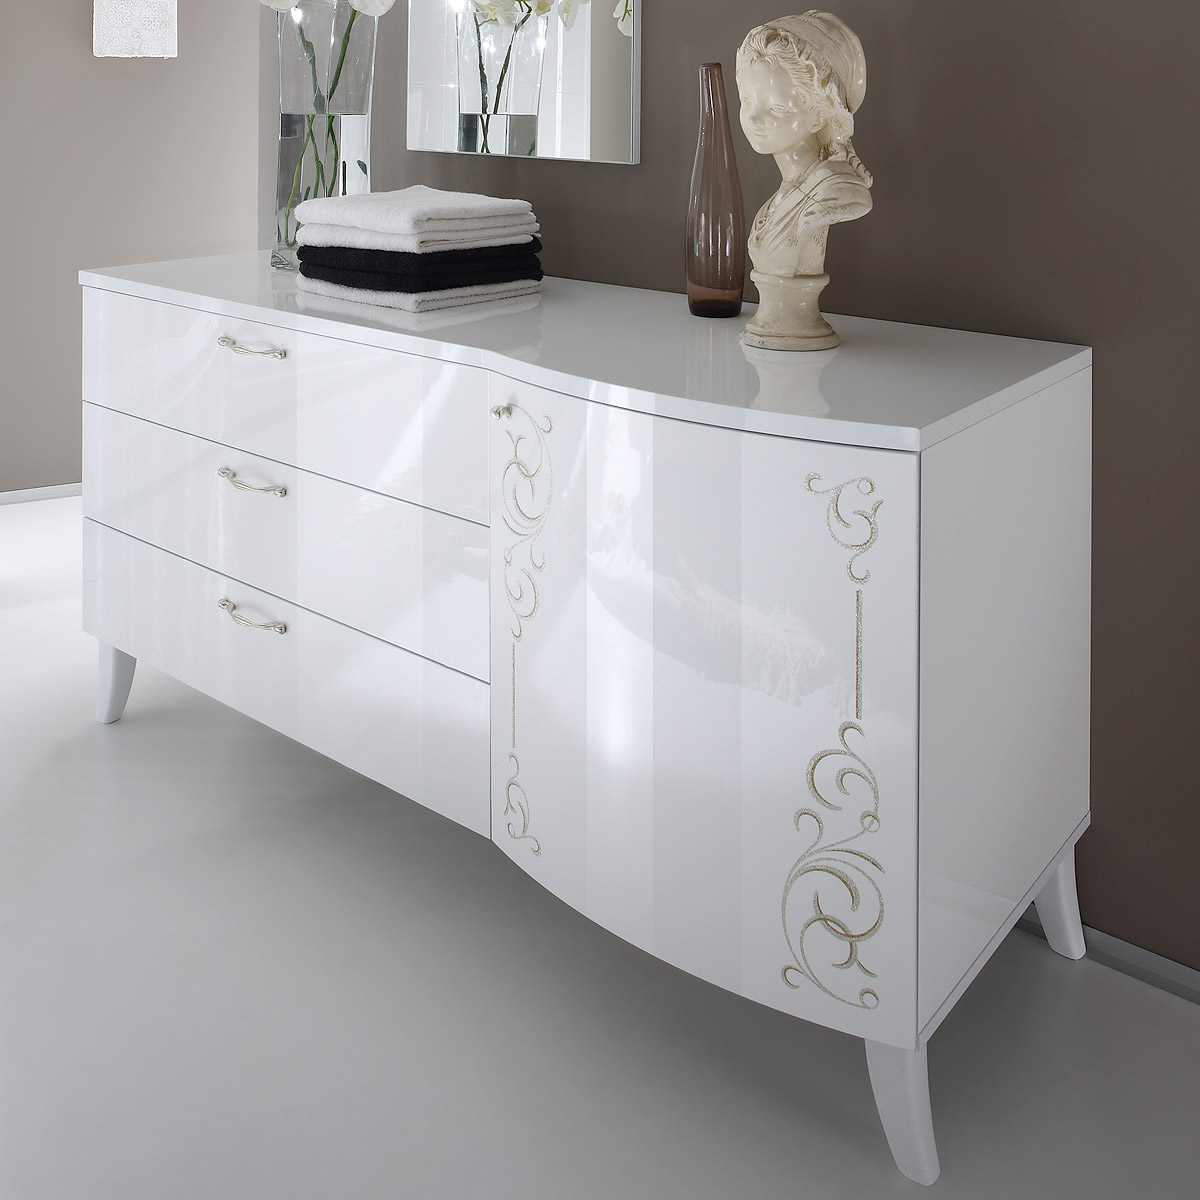 kommode sibilla sideboard wei hochglanz mit siebdruck ebay. Black Bedroom Furniture Sets. Home Design Ideas